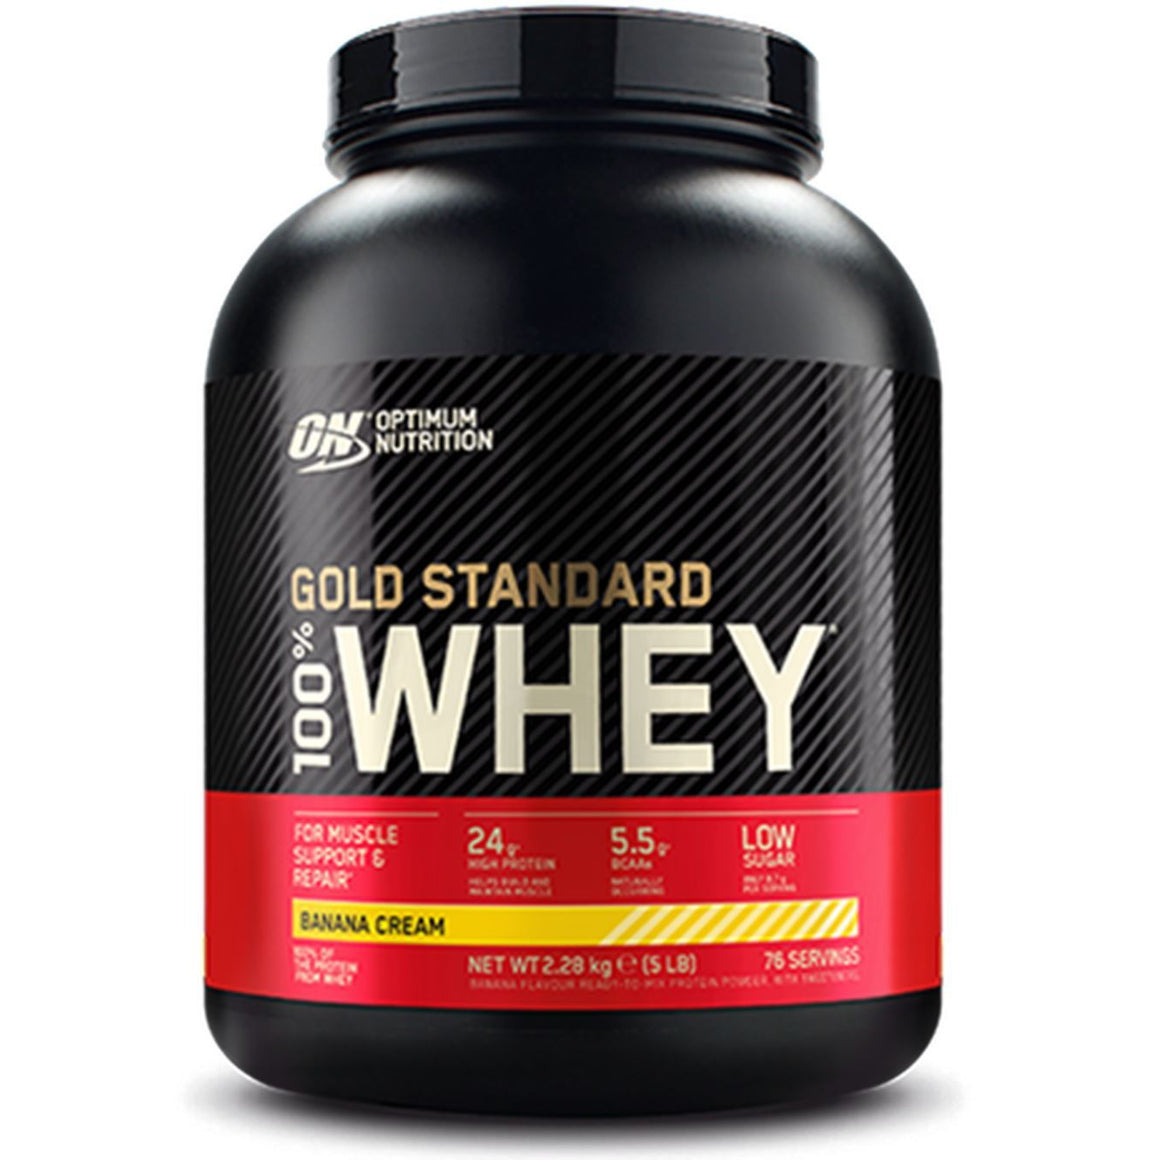 Optimum Nutrition 100% Whey Gold Standard 5lbs